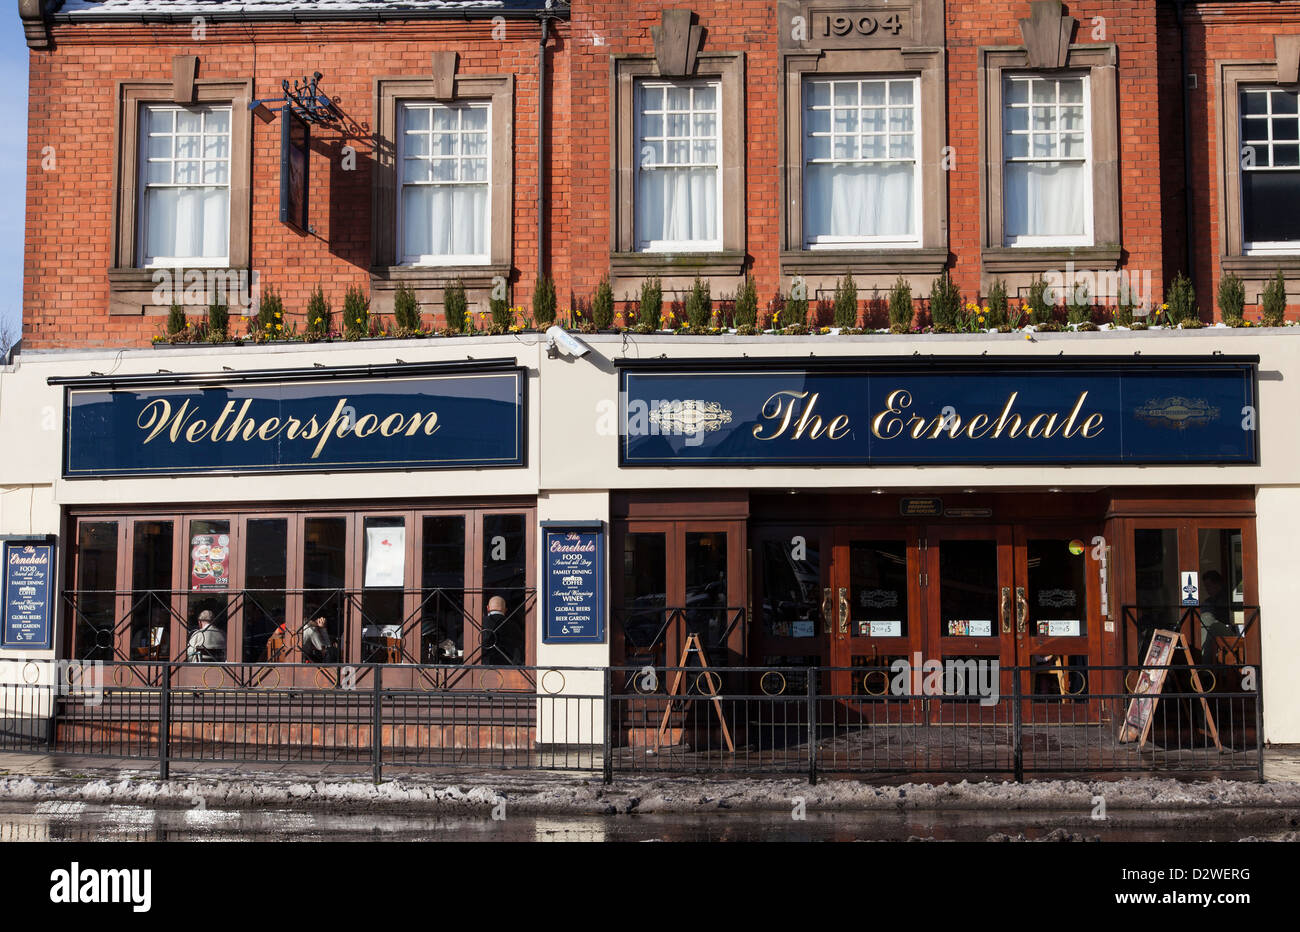 A Wetherspoon public house, The Ernehale in Arnold, Nottingham, England, U.K. - Stock Image